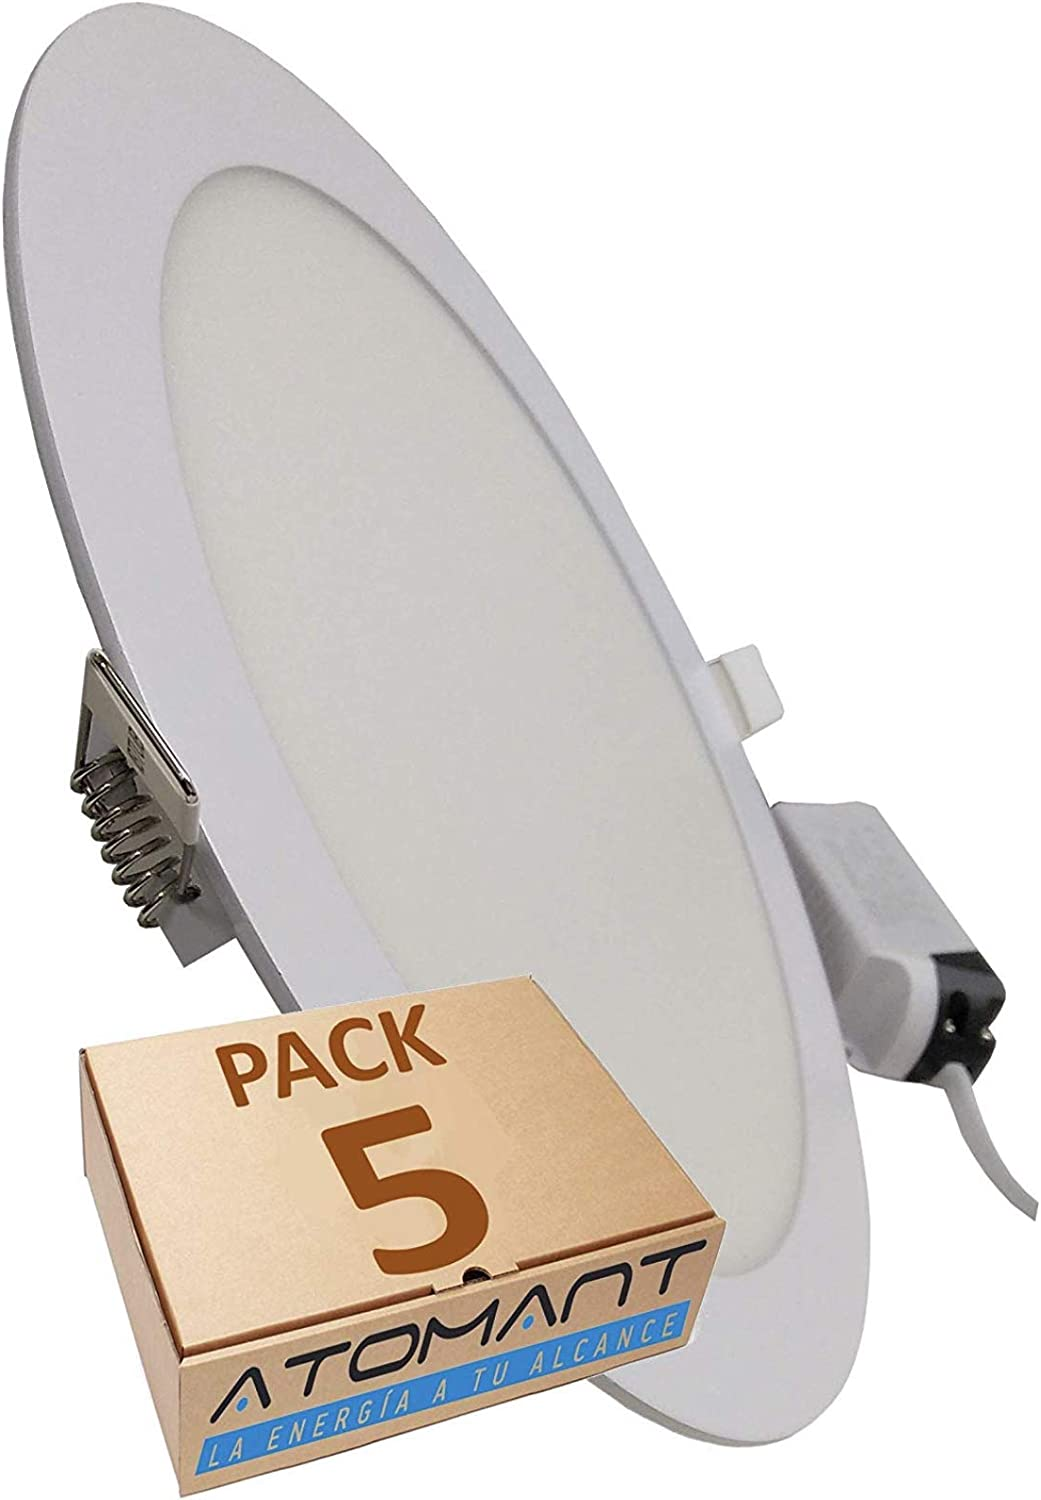 Pack 5x Panel Downlight LED redondo plano, 18w. Color Blanco Frío (6500K). 1600 Lumenes. Driver incluido. A++